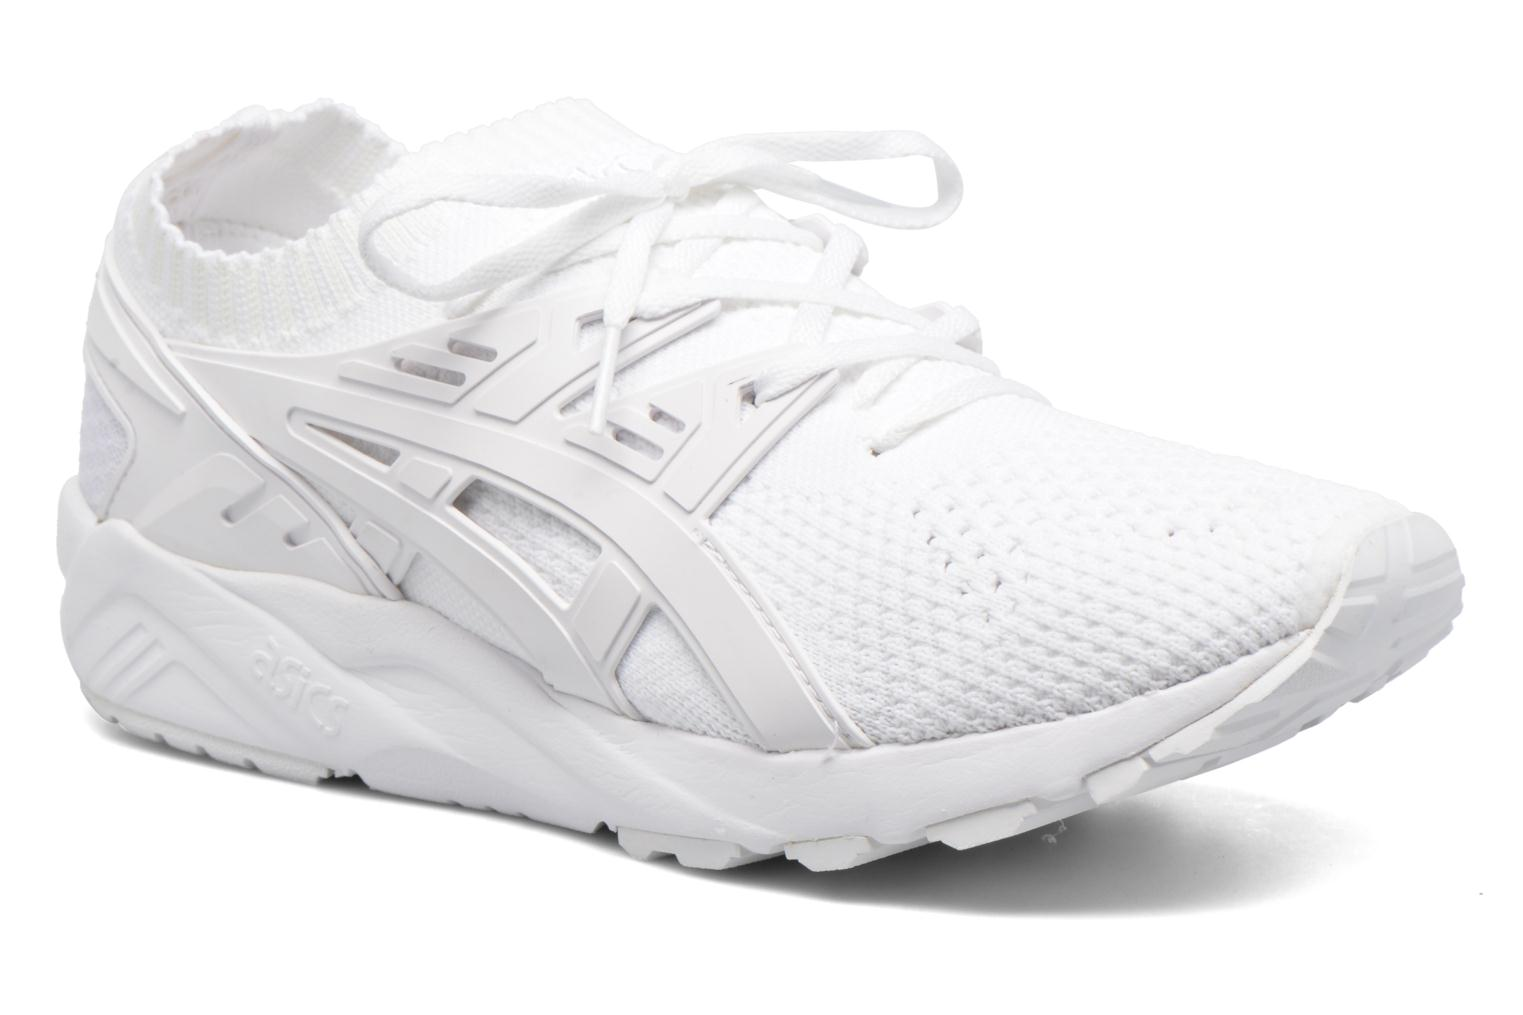 Sneakers Gel Kayano Trainer Knit by Asics